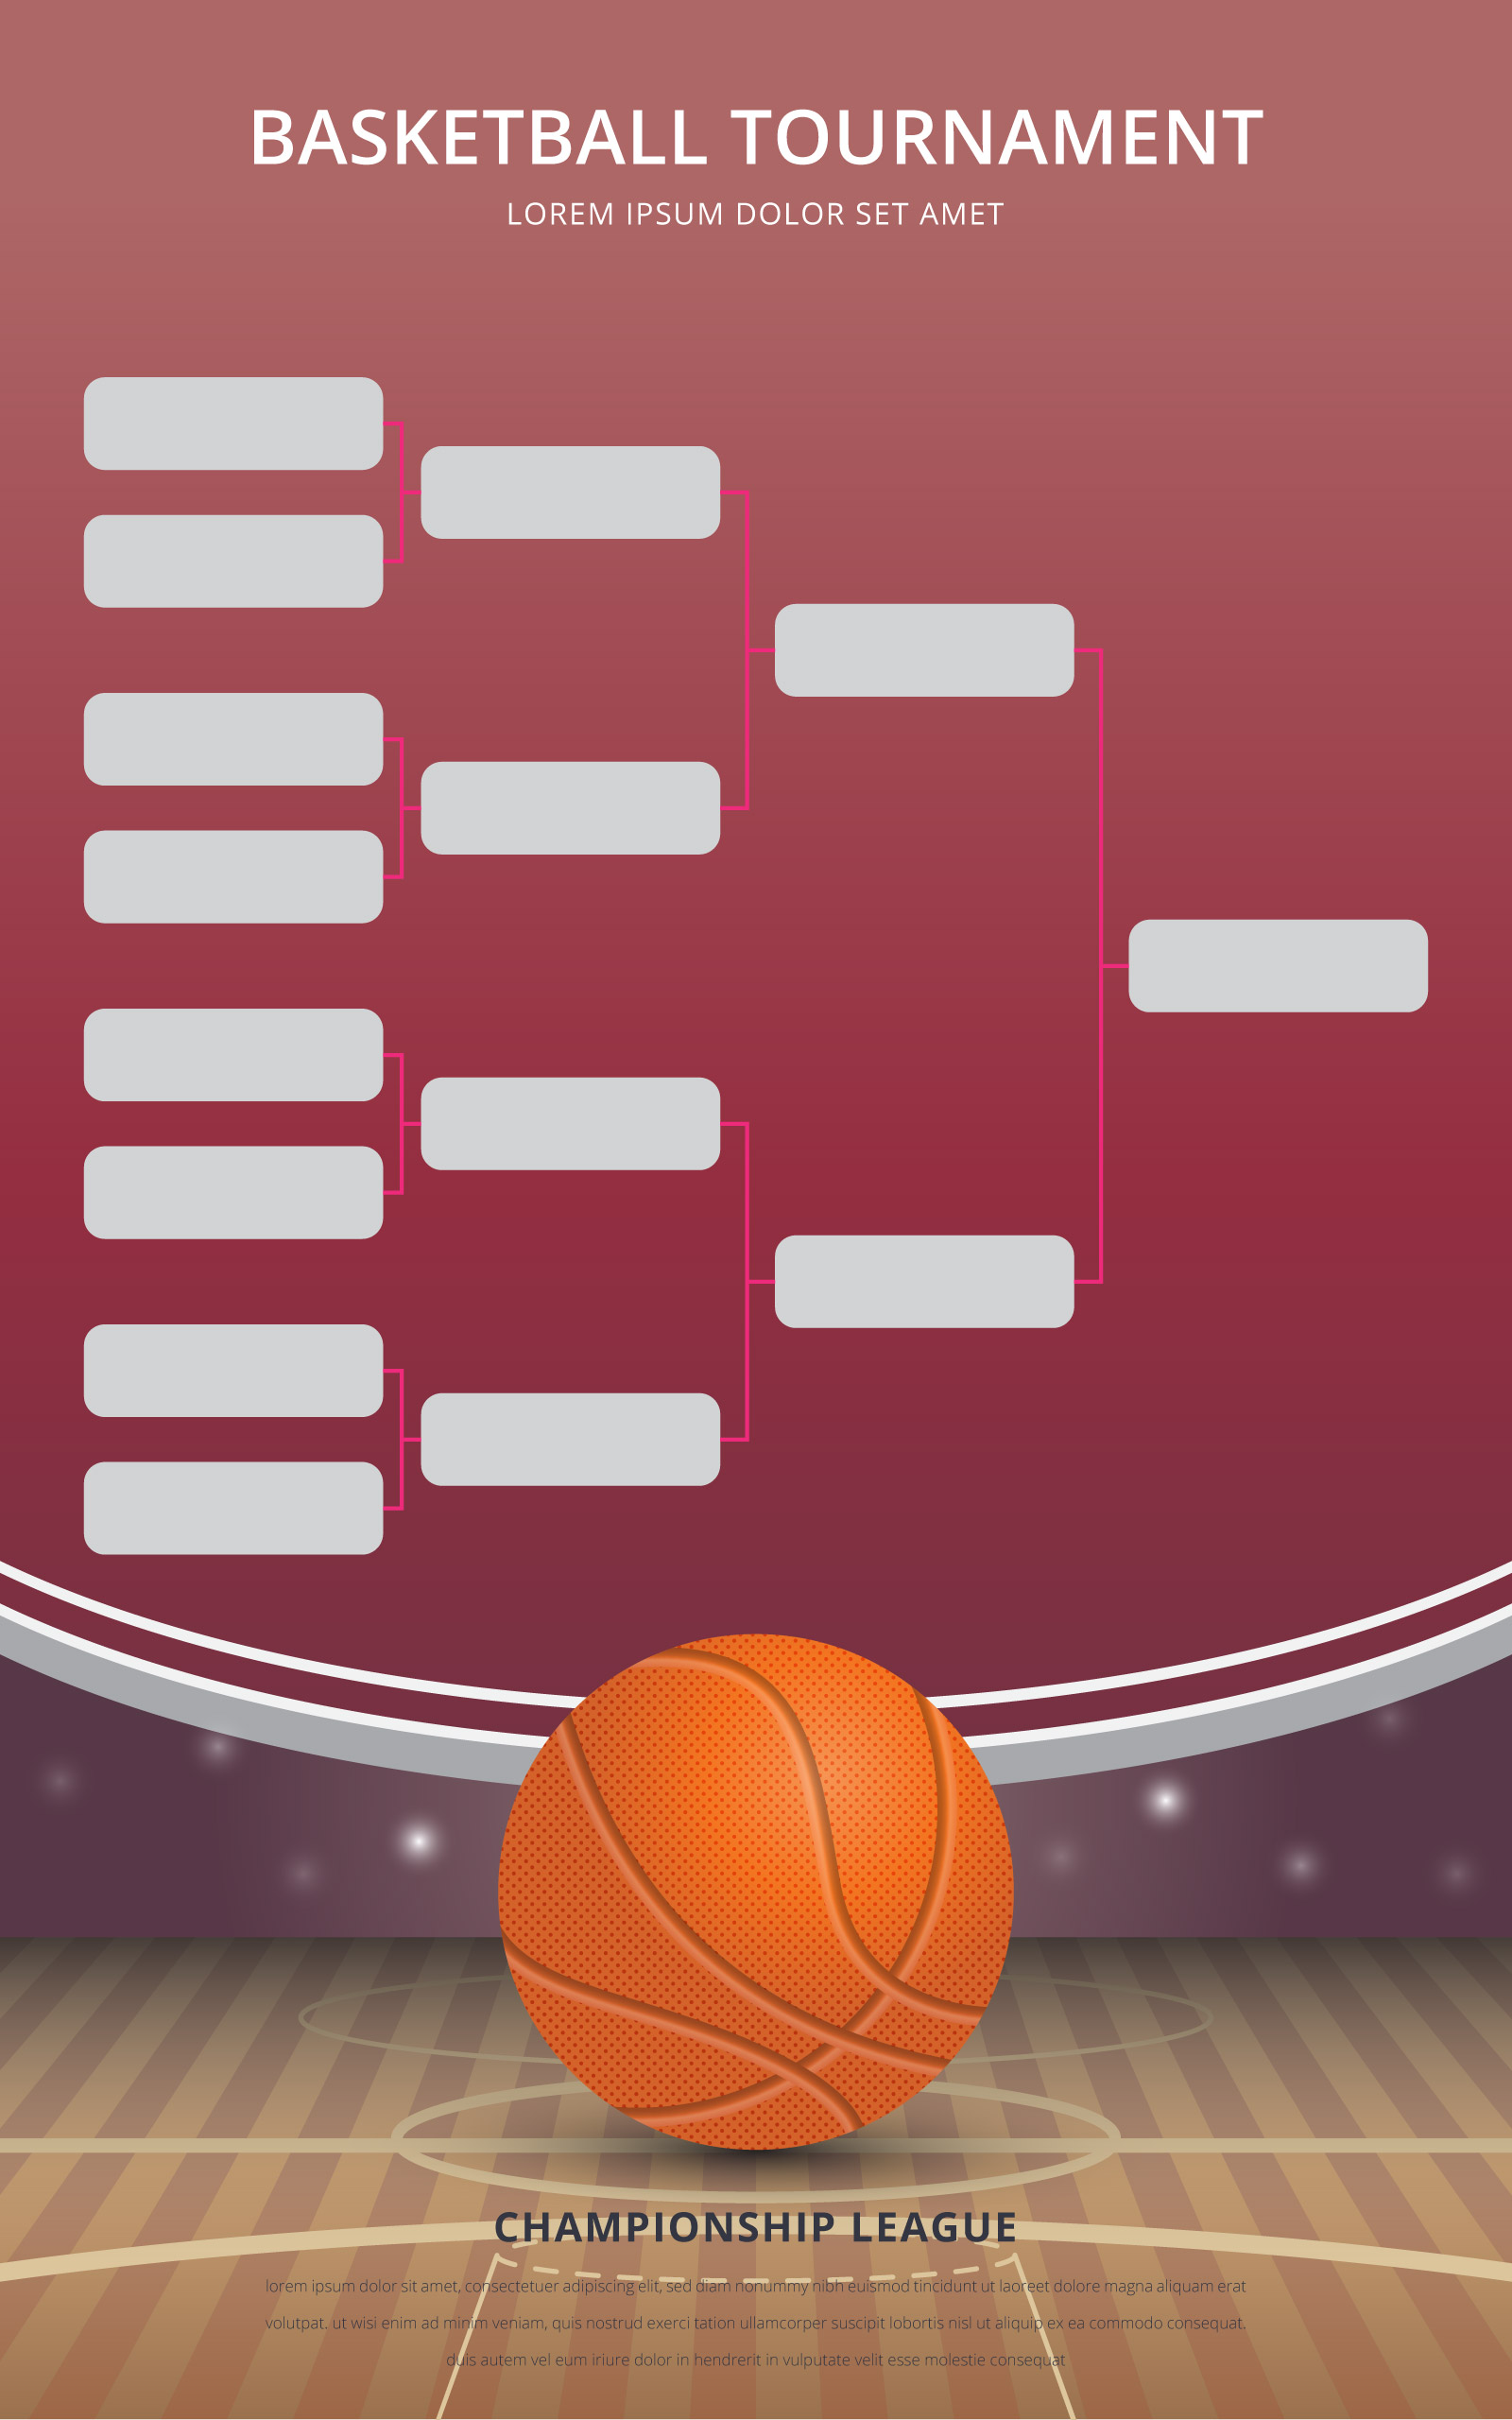 Basketball Tournament Bracket Poster Template Download Free Vector